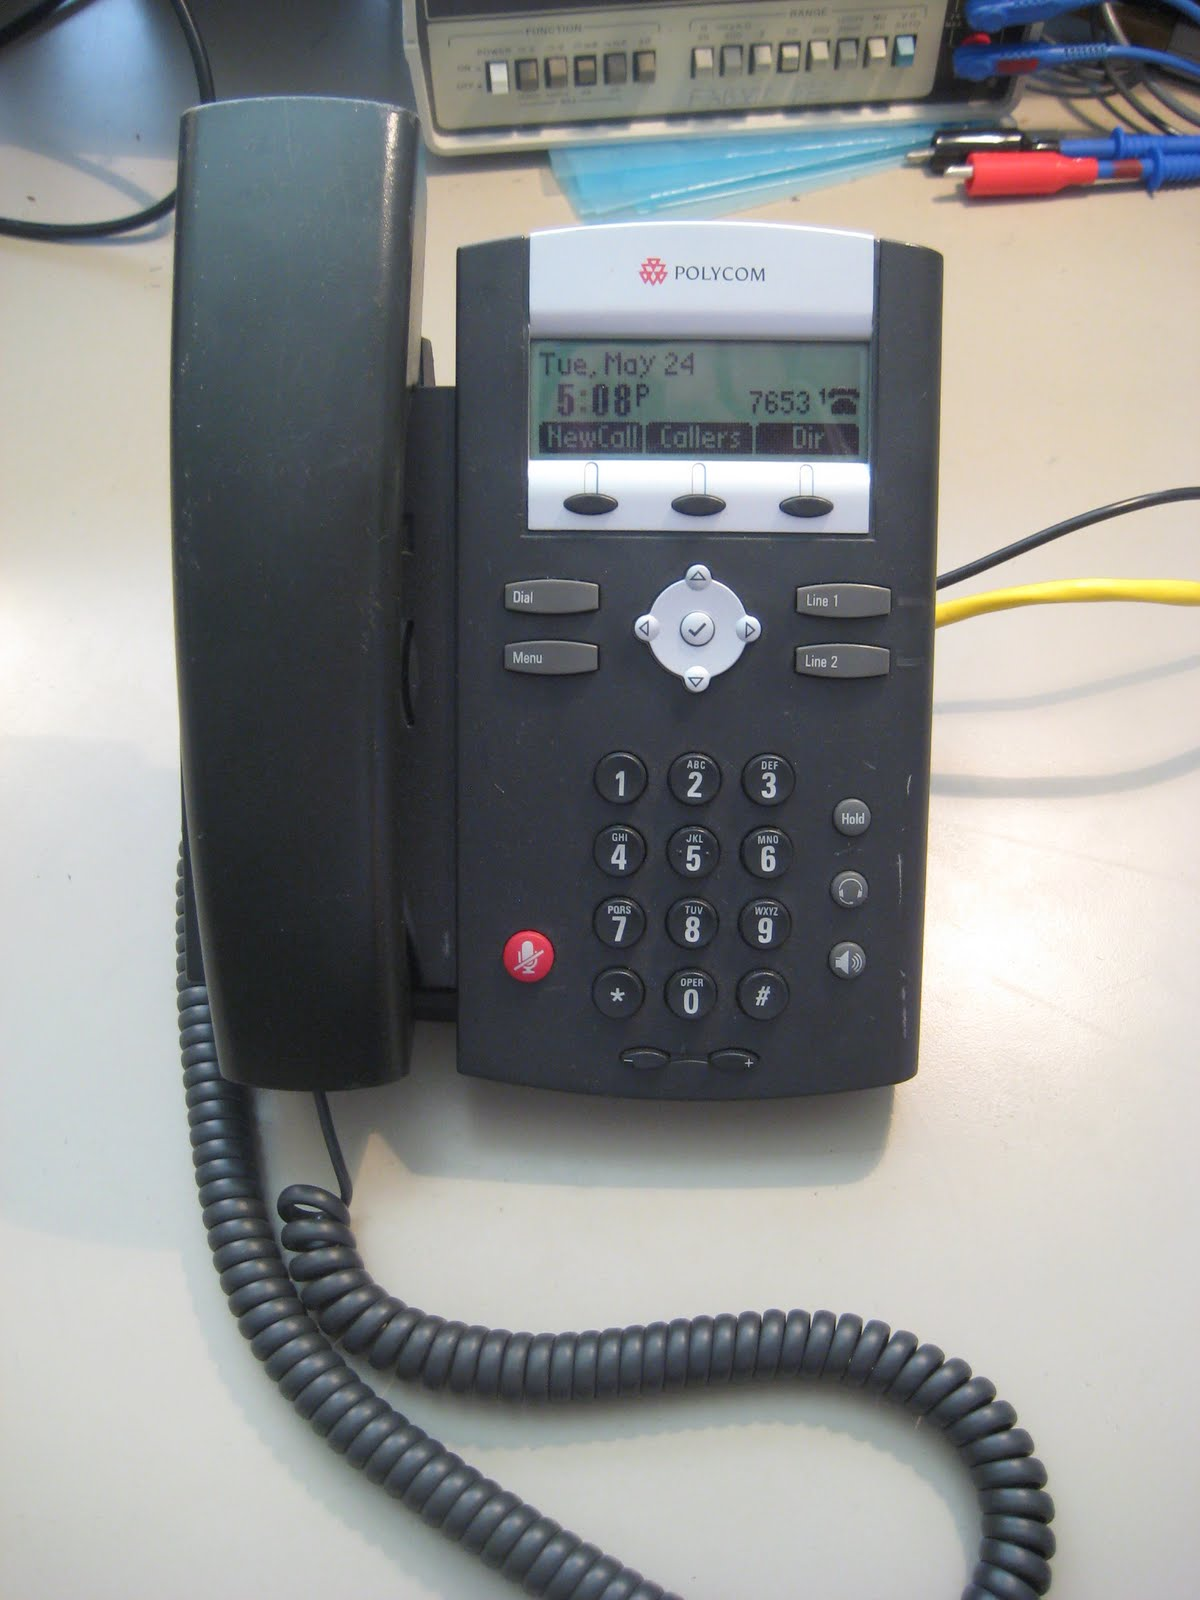 The Life of Kenneth: How to Configure a Polycom Soundpoint